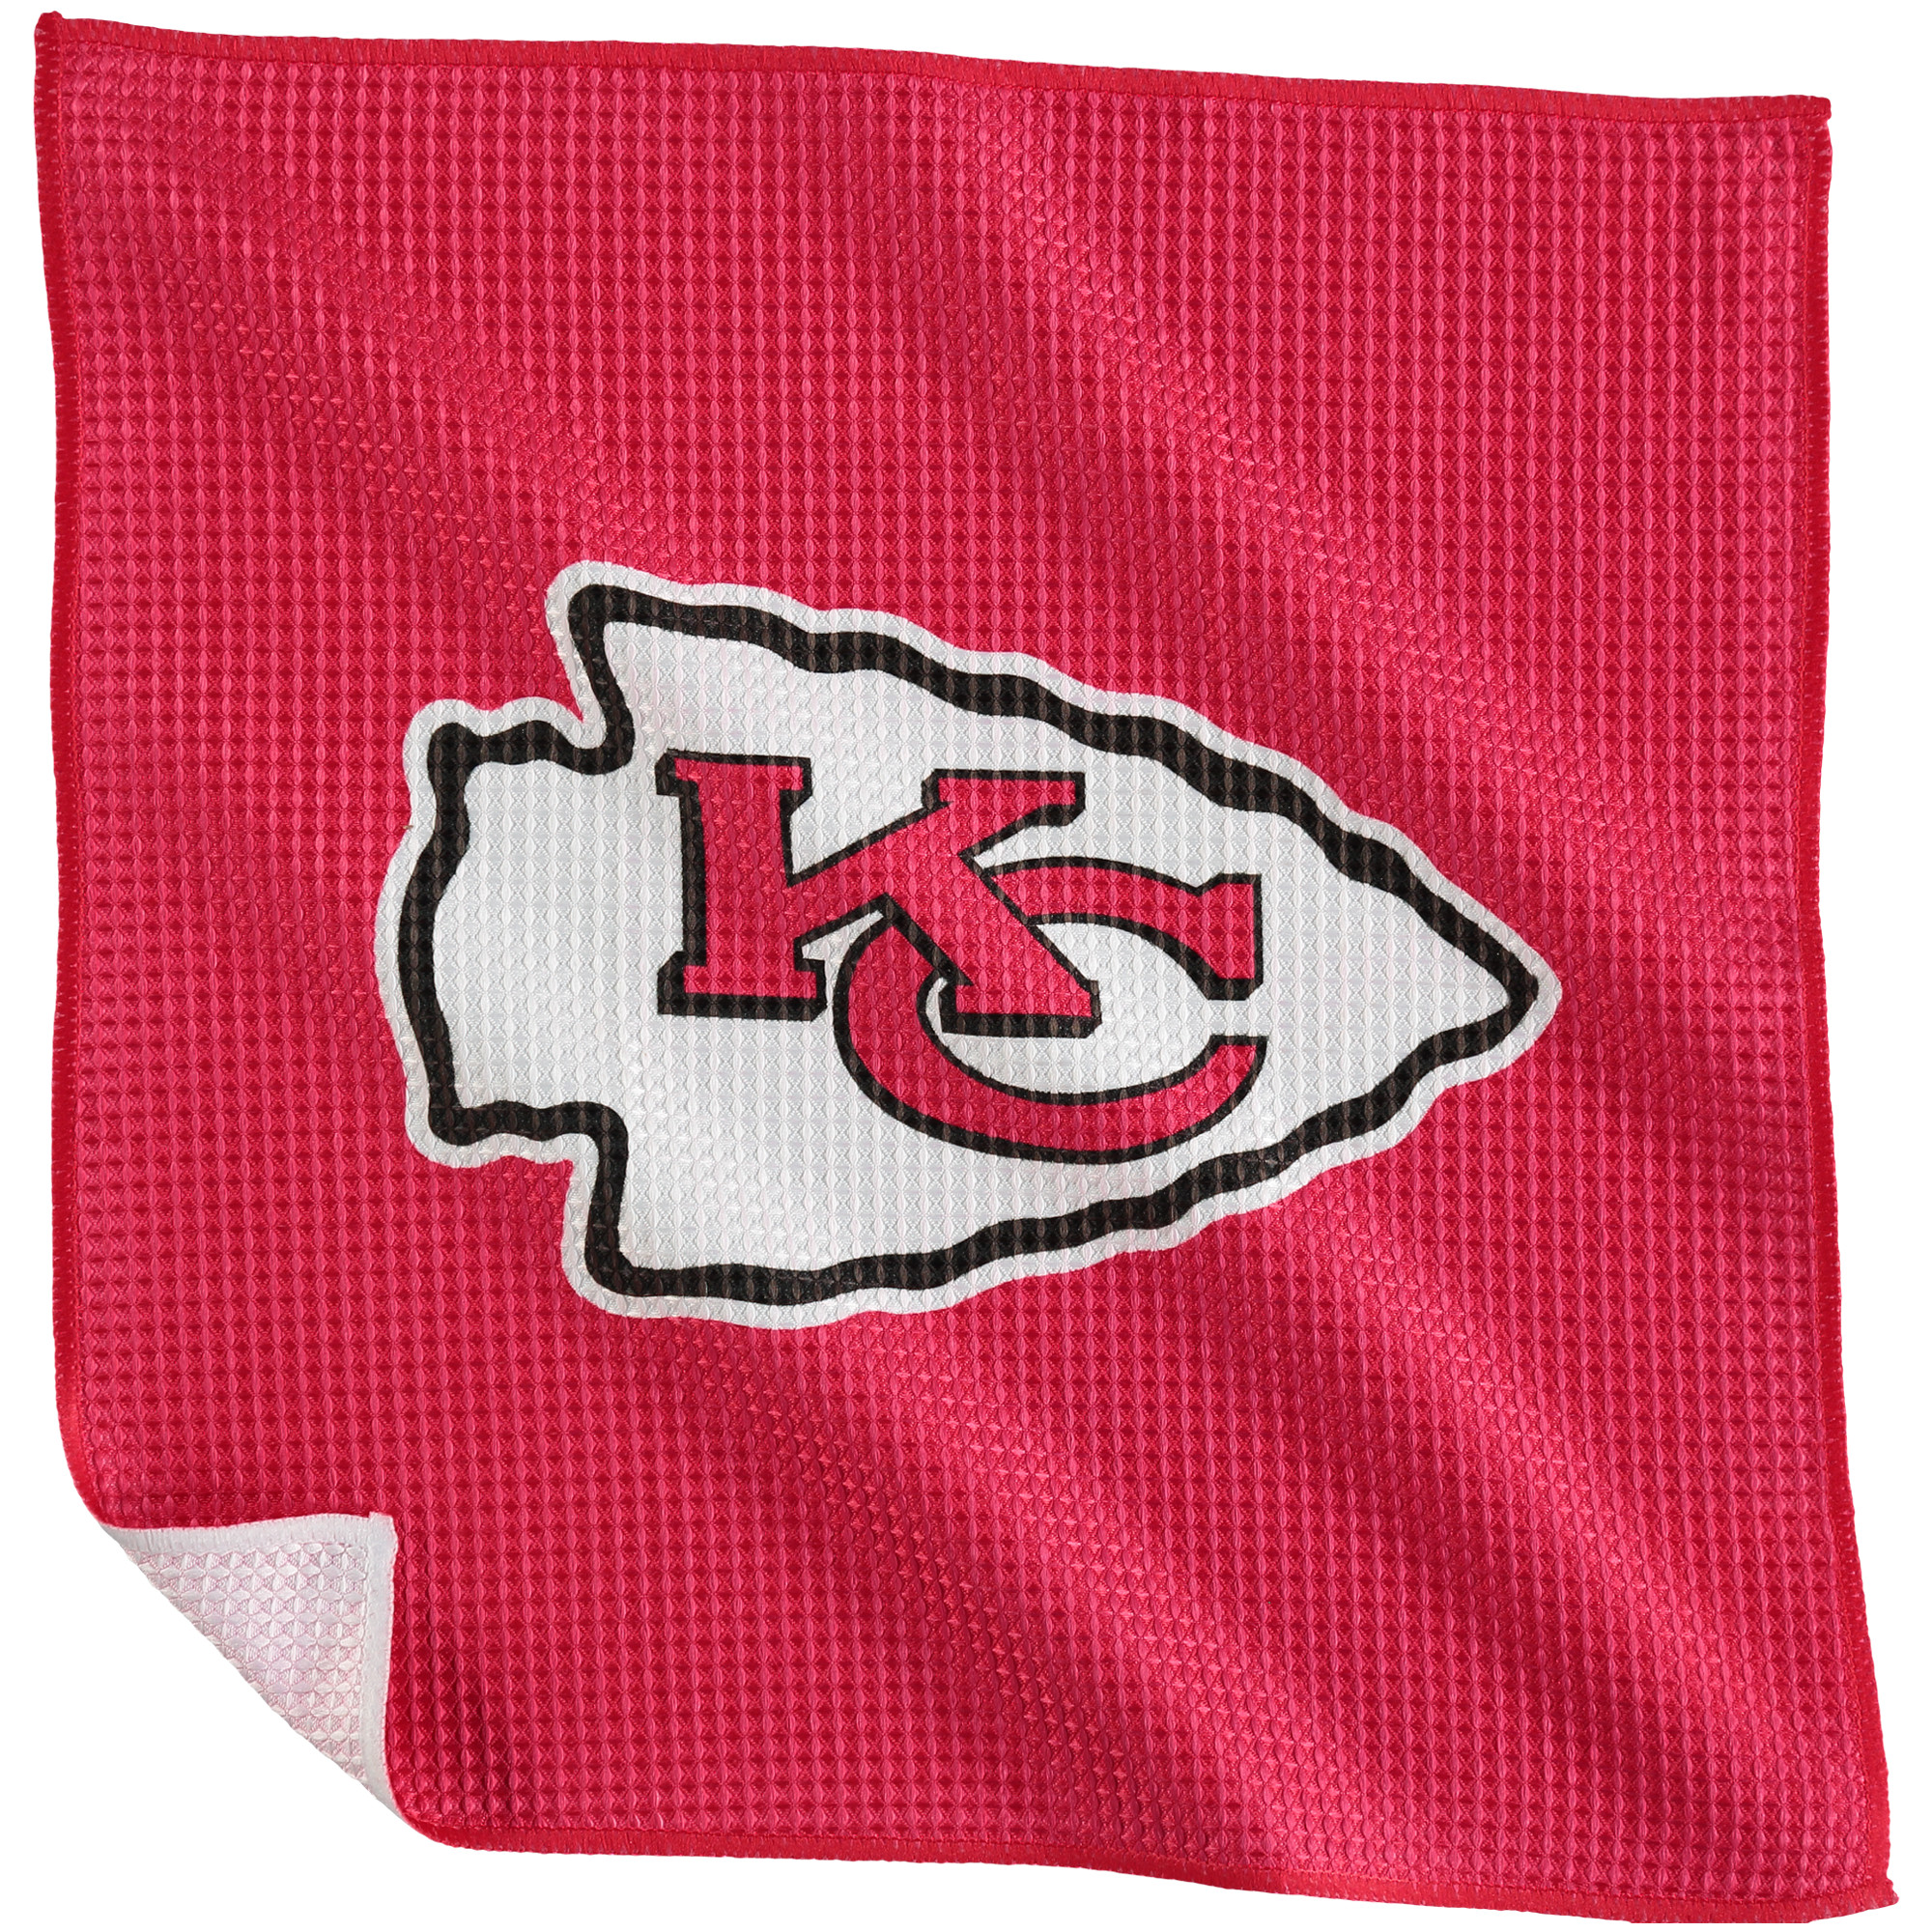 "Kansas City Chiefs 16"" x 16"" Microfiber Towel - No Size"